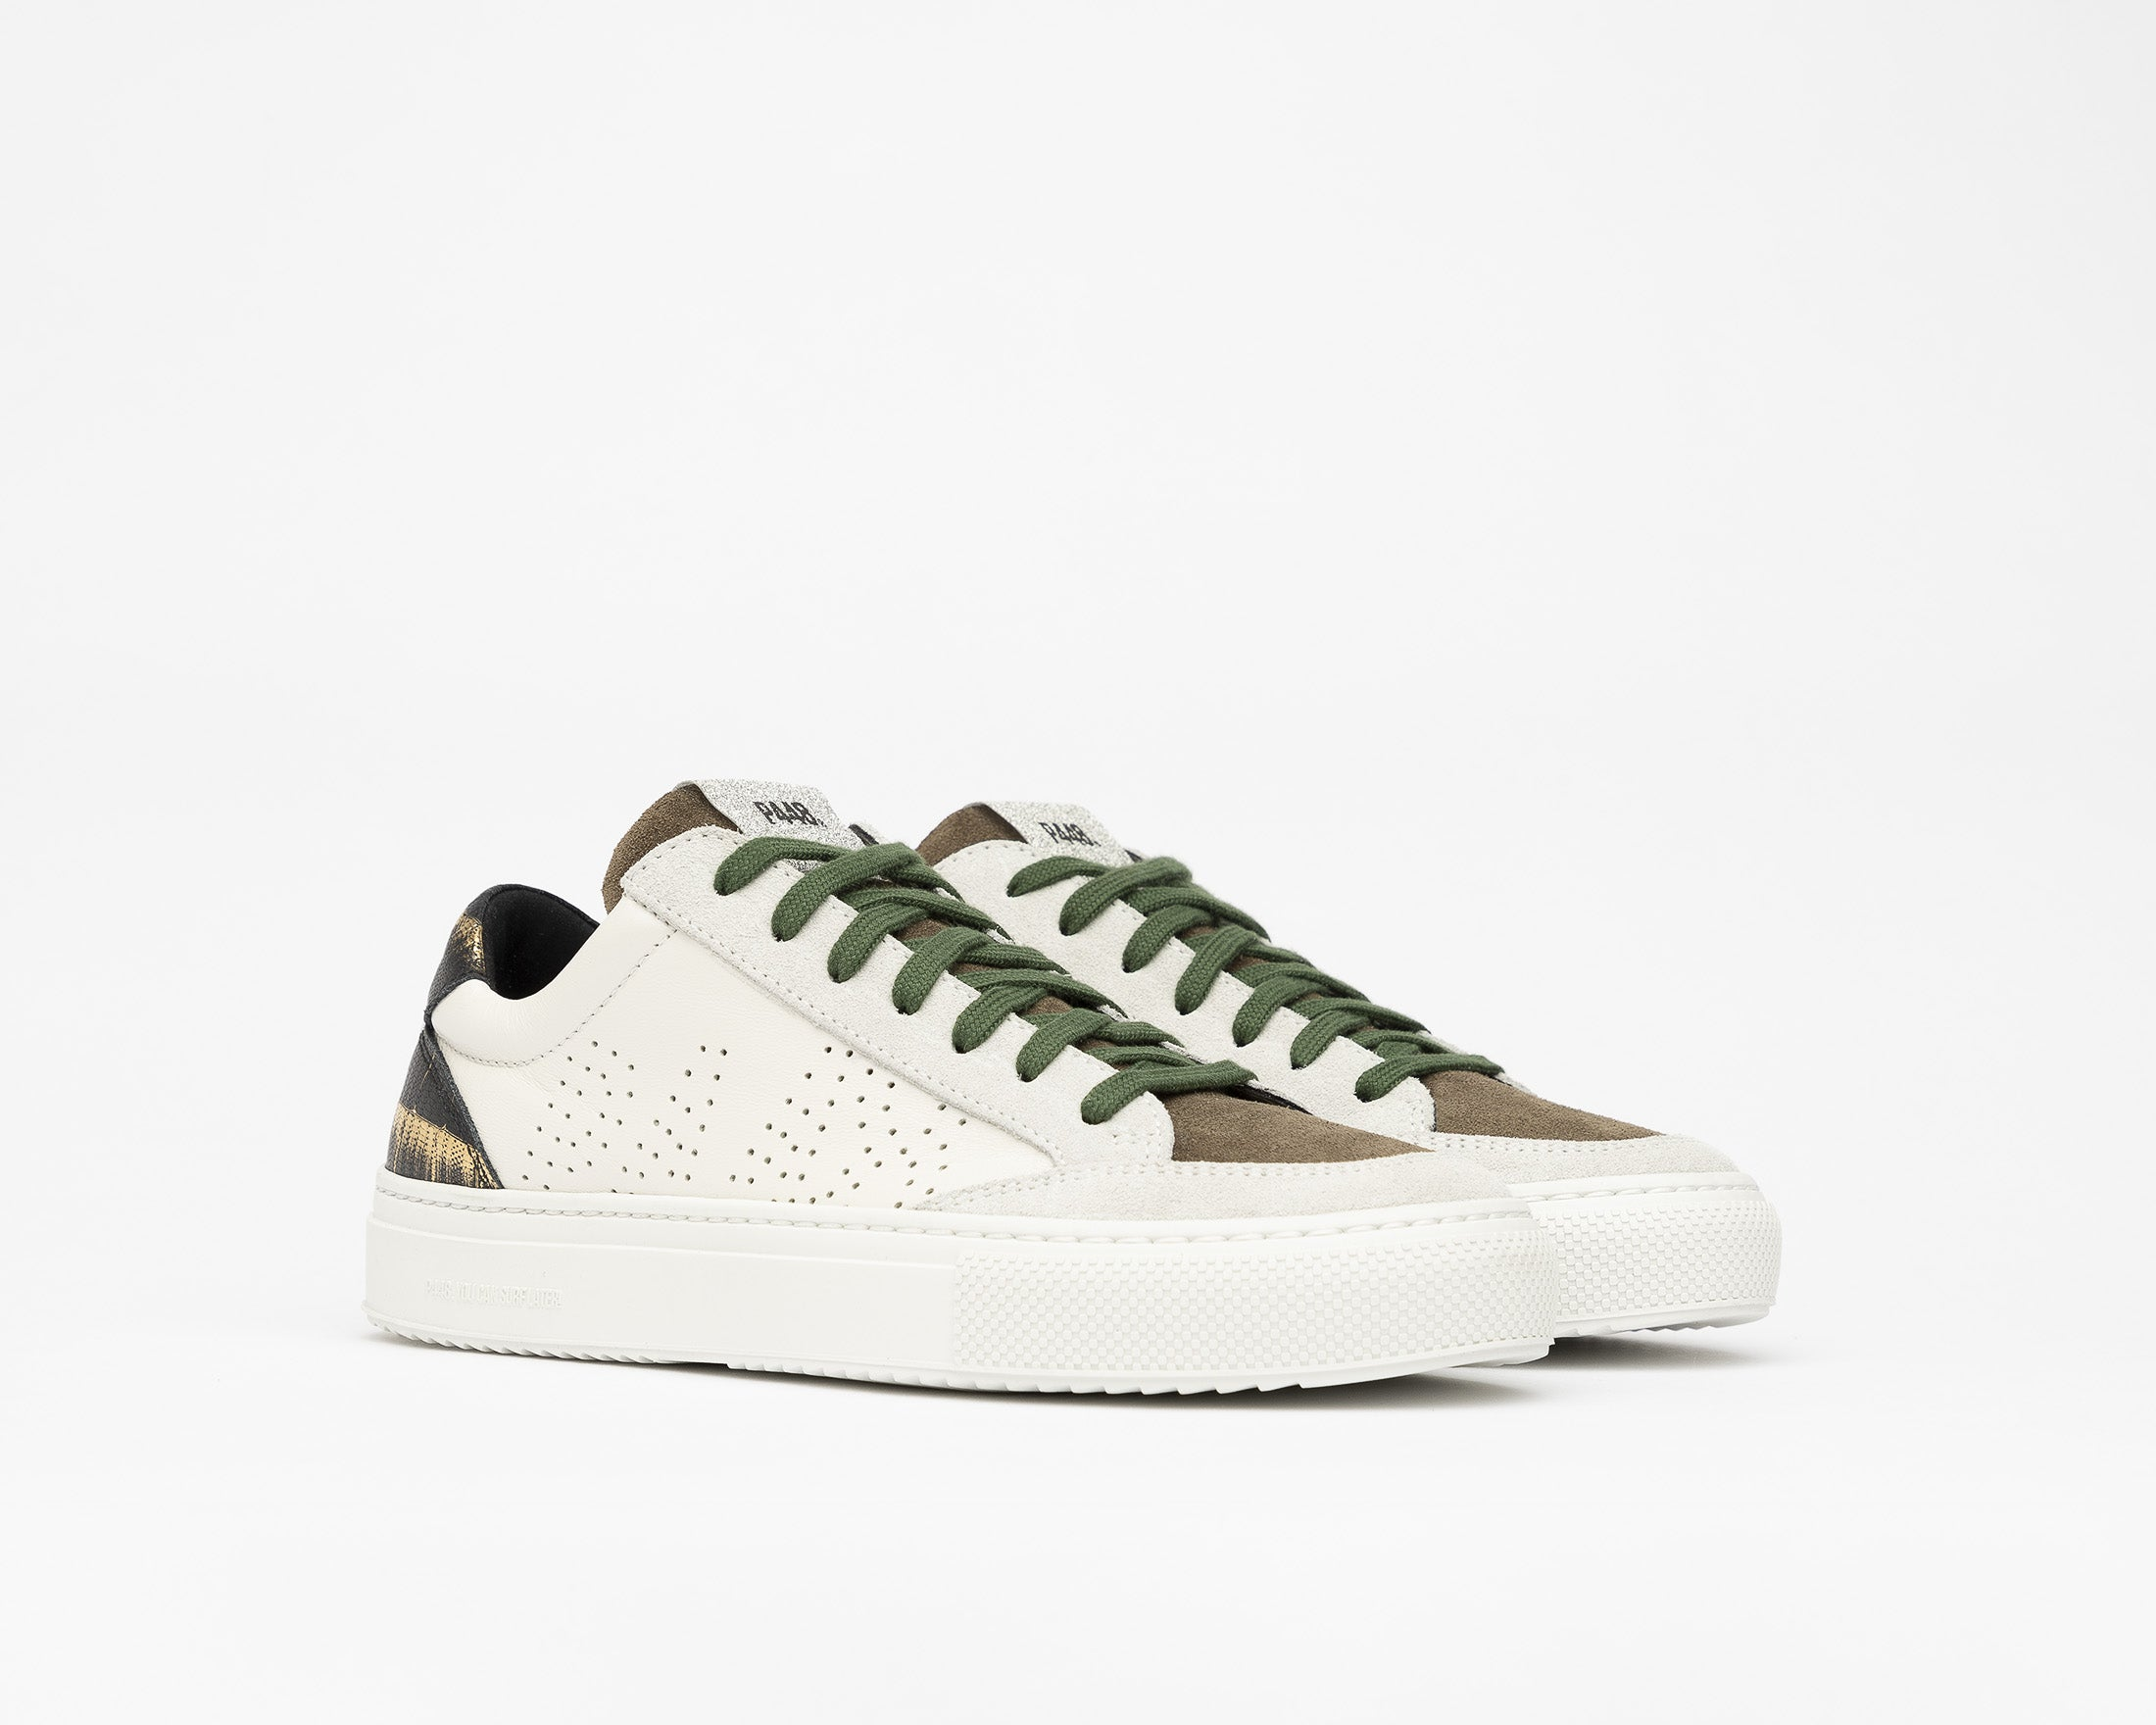 Soho Pull-on Sneaker in Clarm - Side